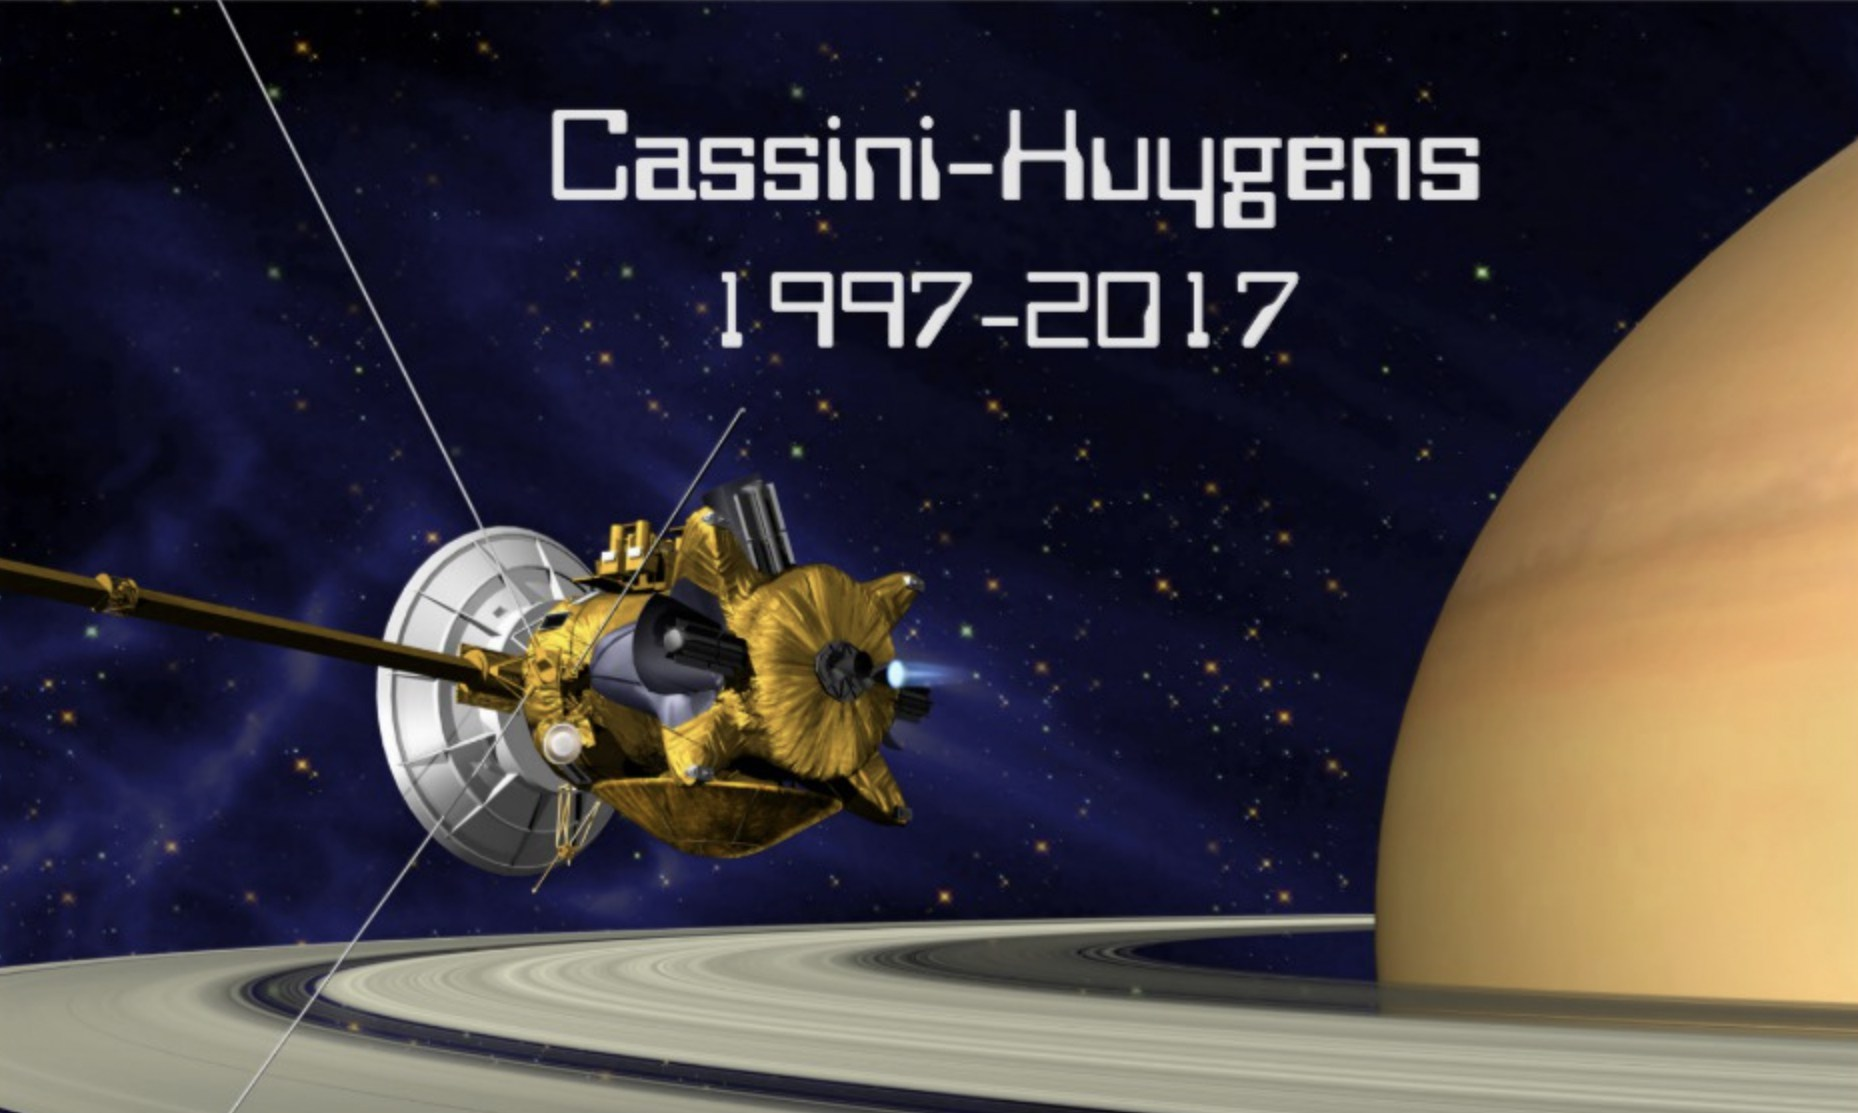 cassinihuygensmission.jpg